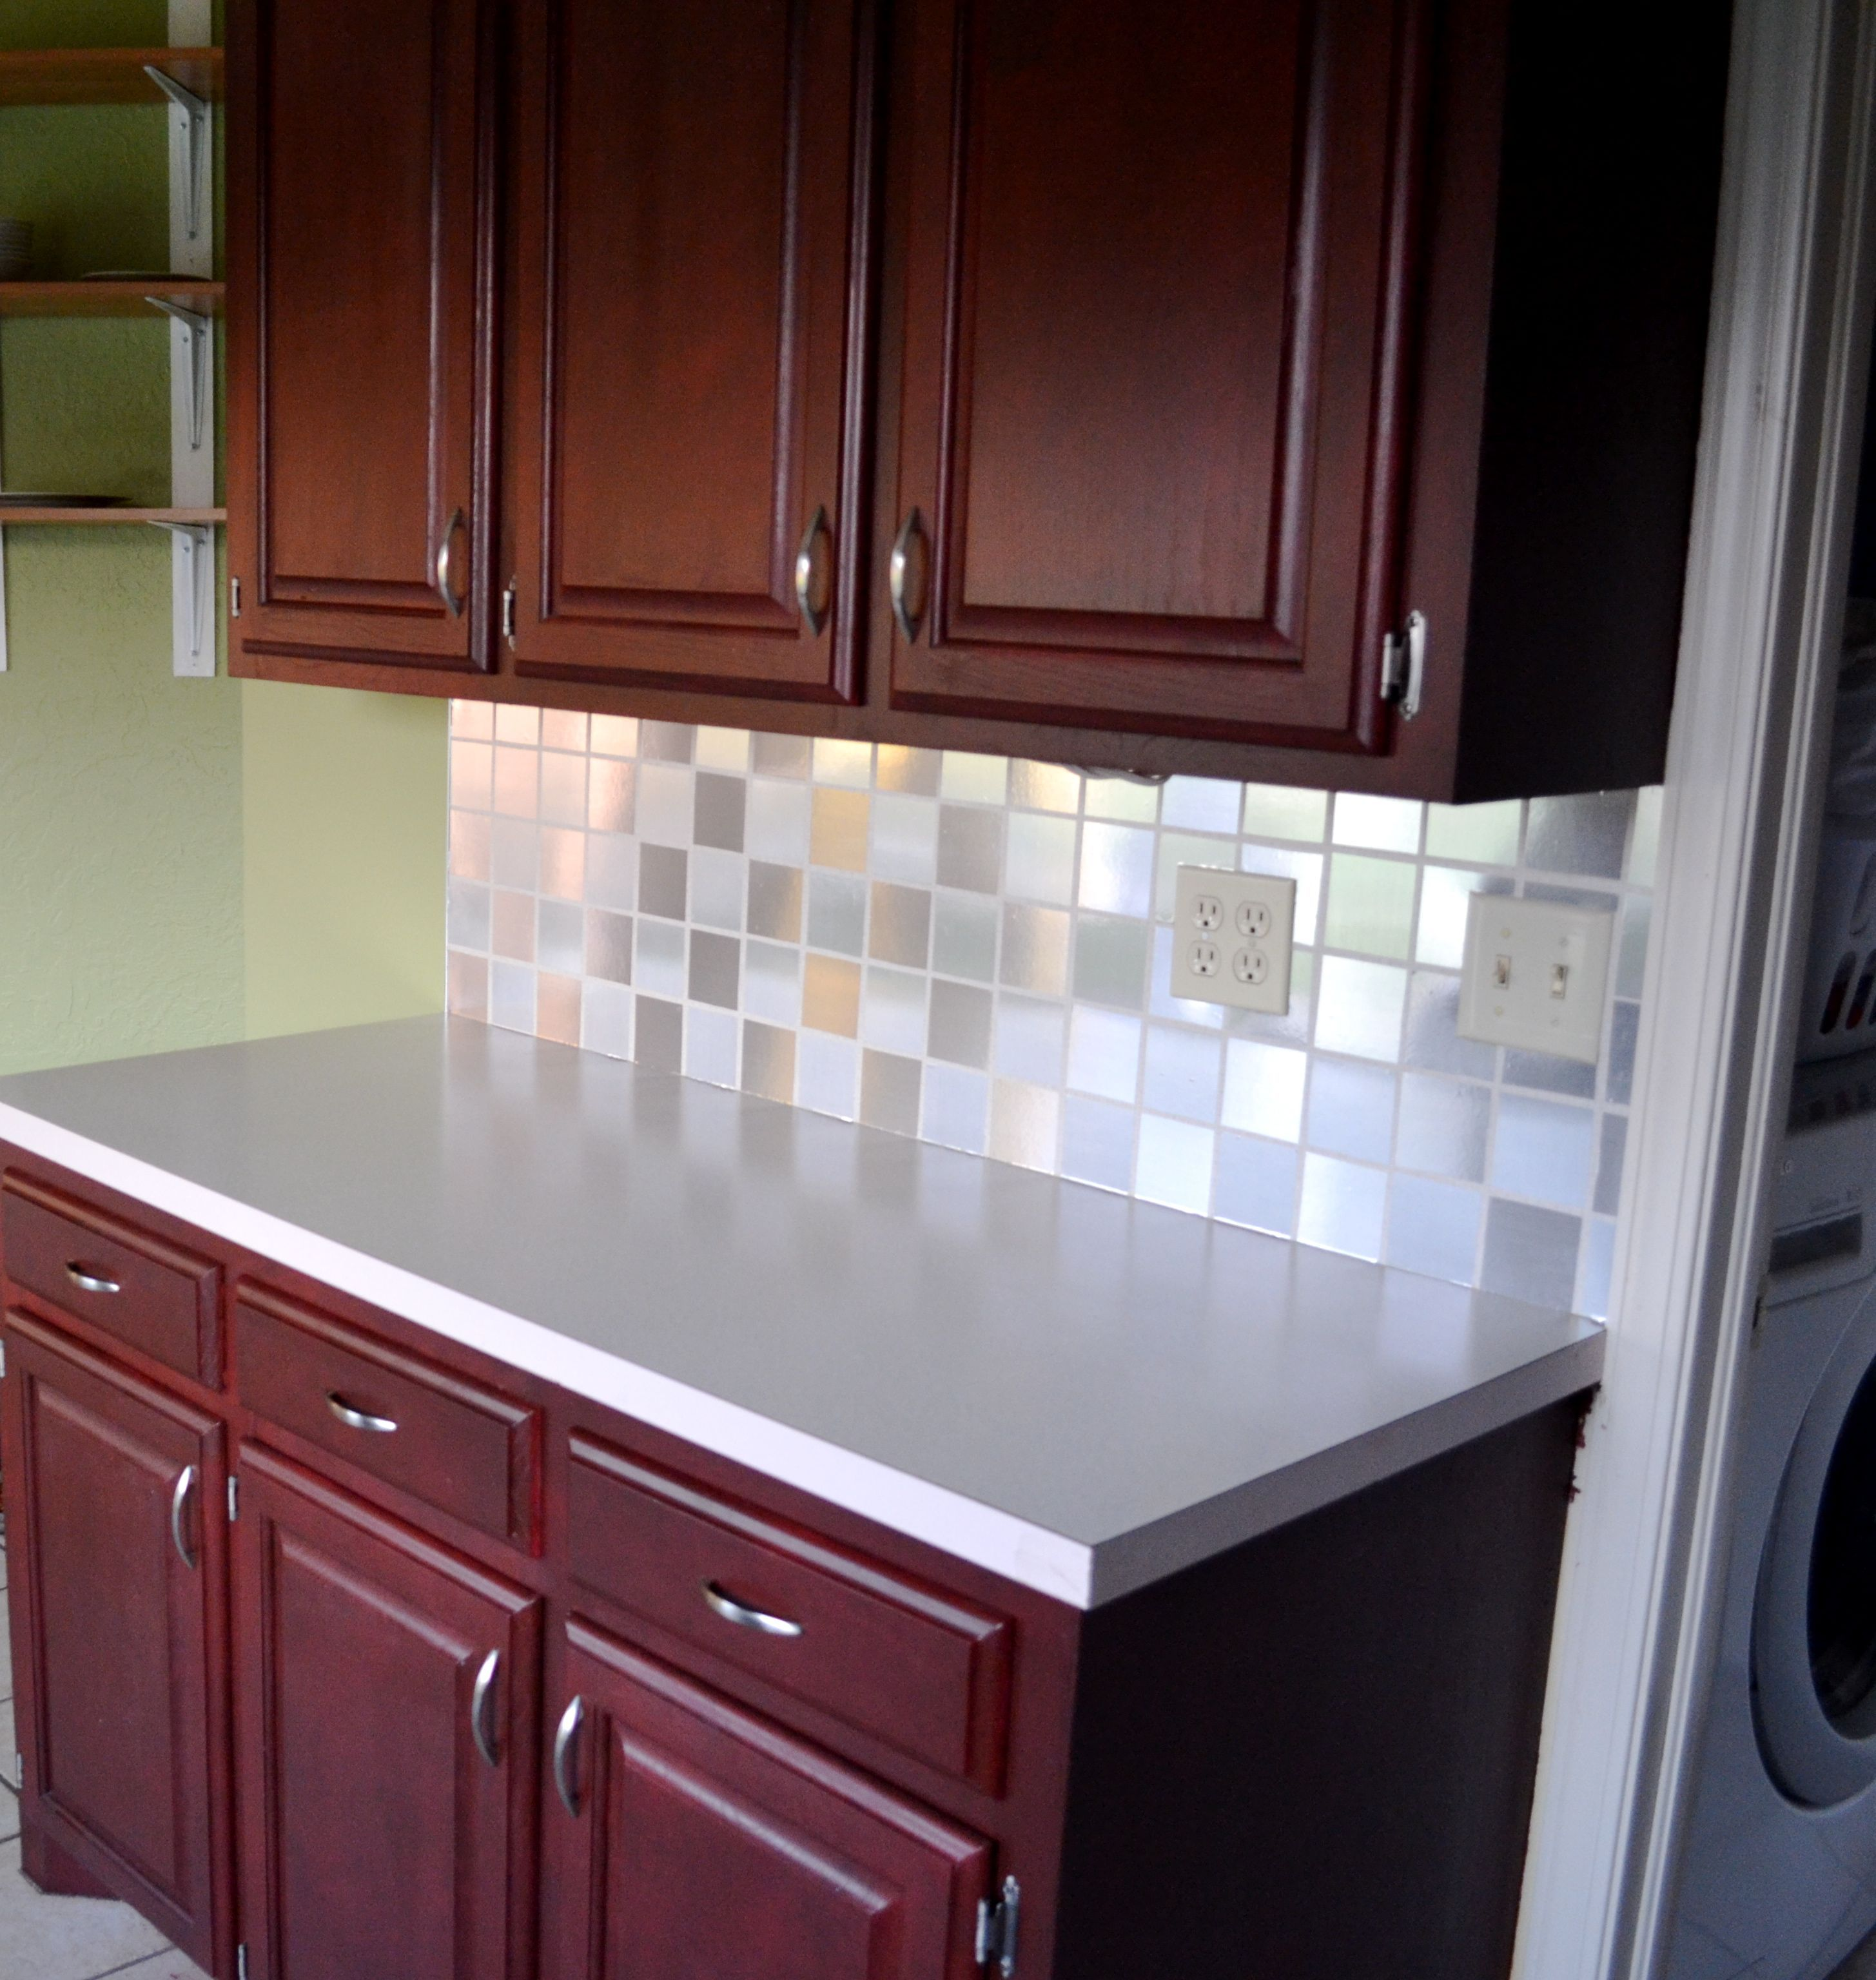 Ordinary Contact Paper Backsplash Ideas Part - 6: Backsplash Made Out Of Contact Paper. Great Way To Spruce Up An Ugly  Backsplsh In